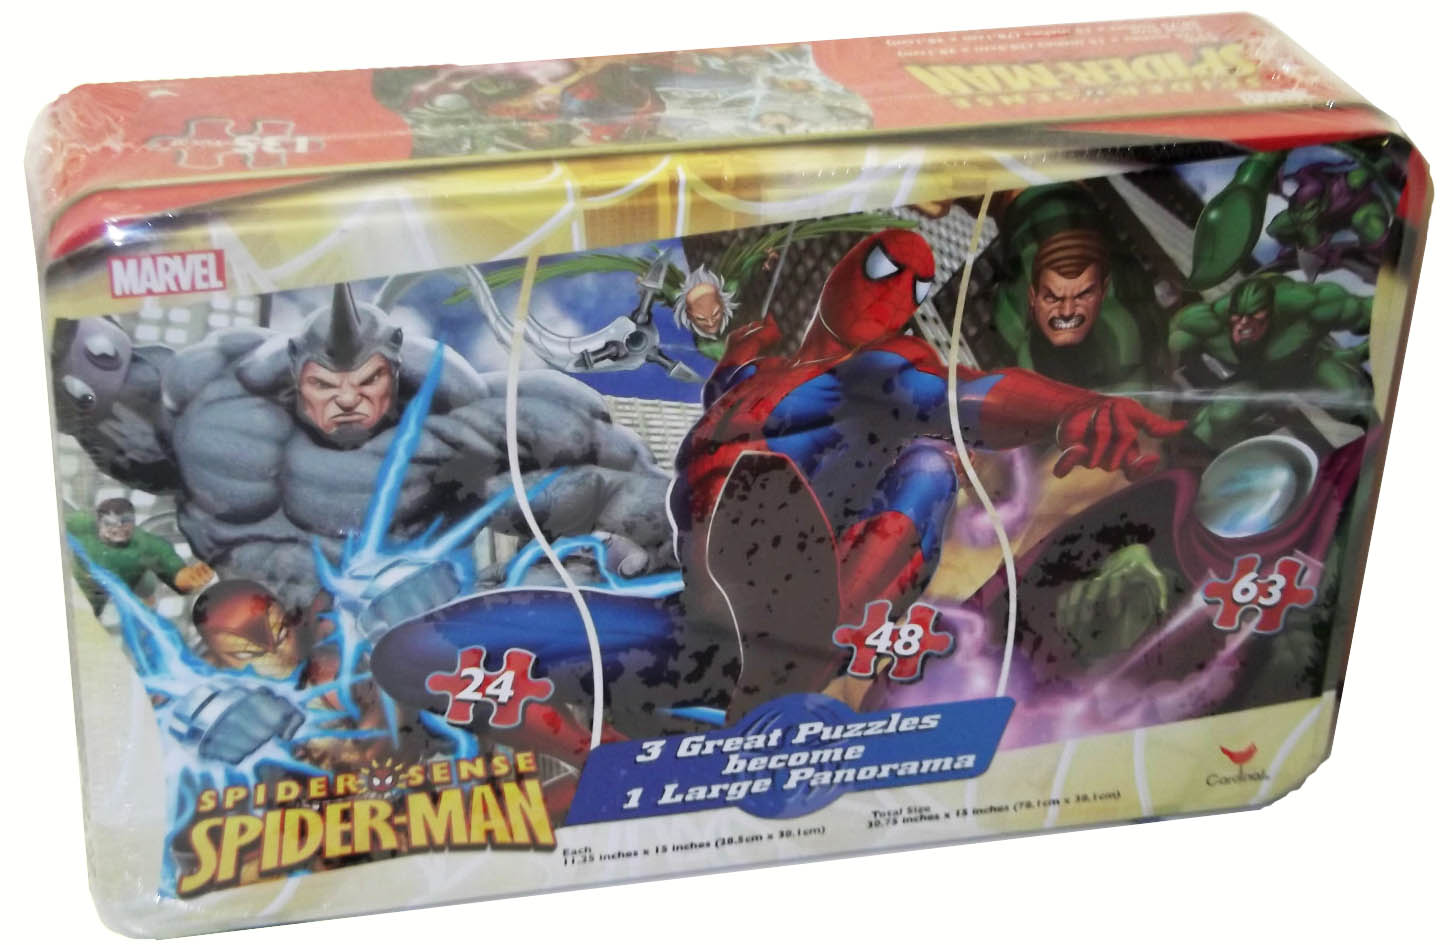 3 in 1 Panoramic - Spider-Sense Cartoons Jigsaw Puzzle